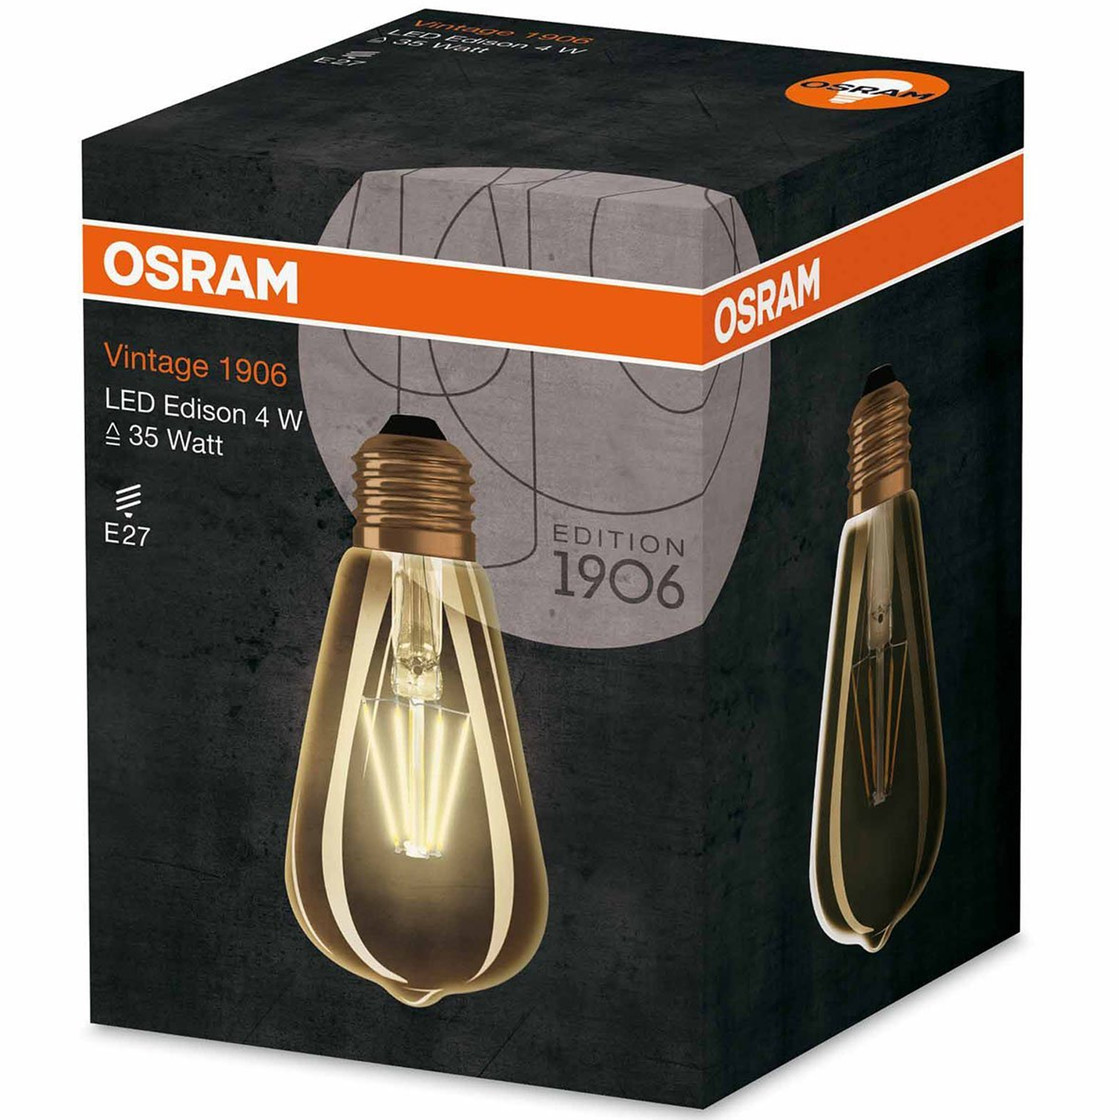 osram led agl edison vintage 1906 dimmbar e27 6 5w 51w gl hbirne wa 8 49. Black Bedroom Furniture Sets. Home Design Ideas